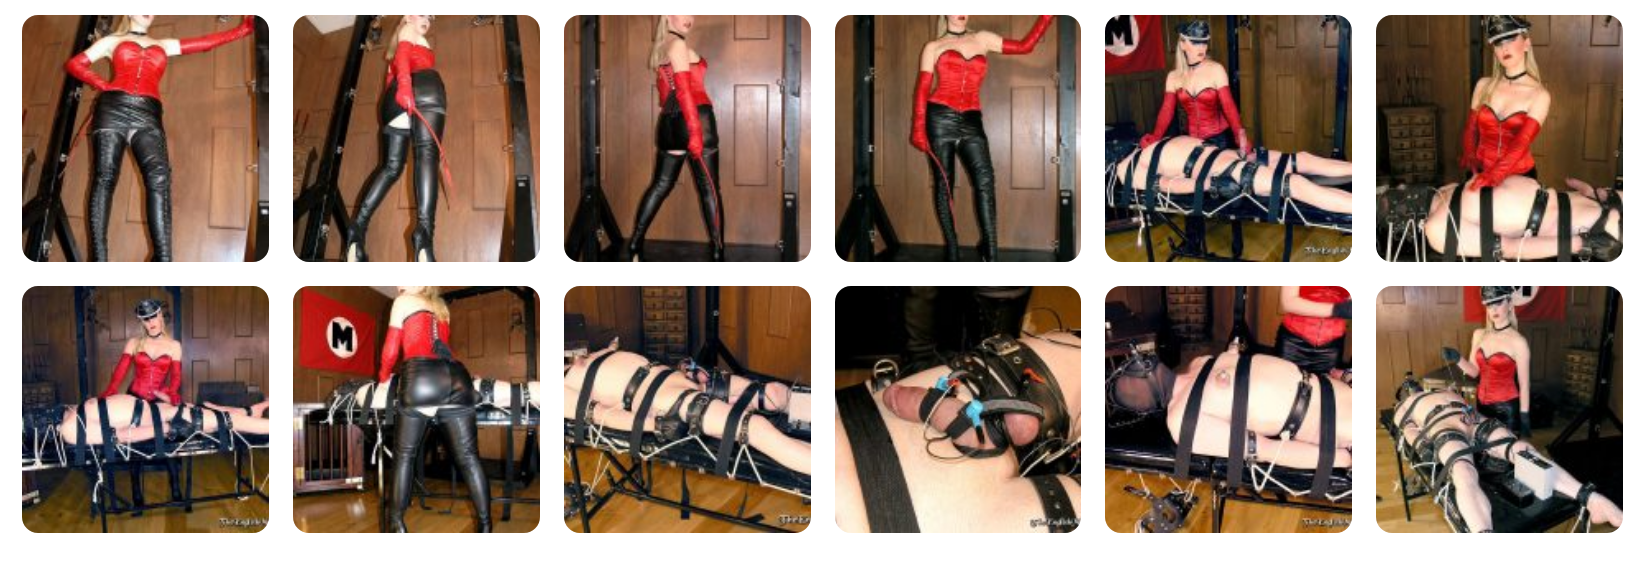 Mistress Sidonia of The English Mansion electro CBT and nipple torture